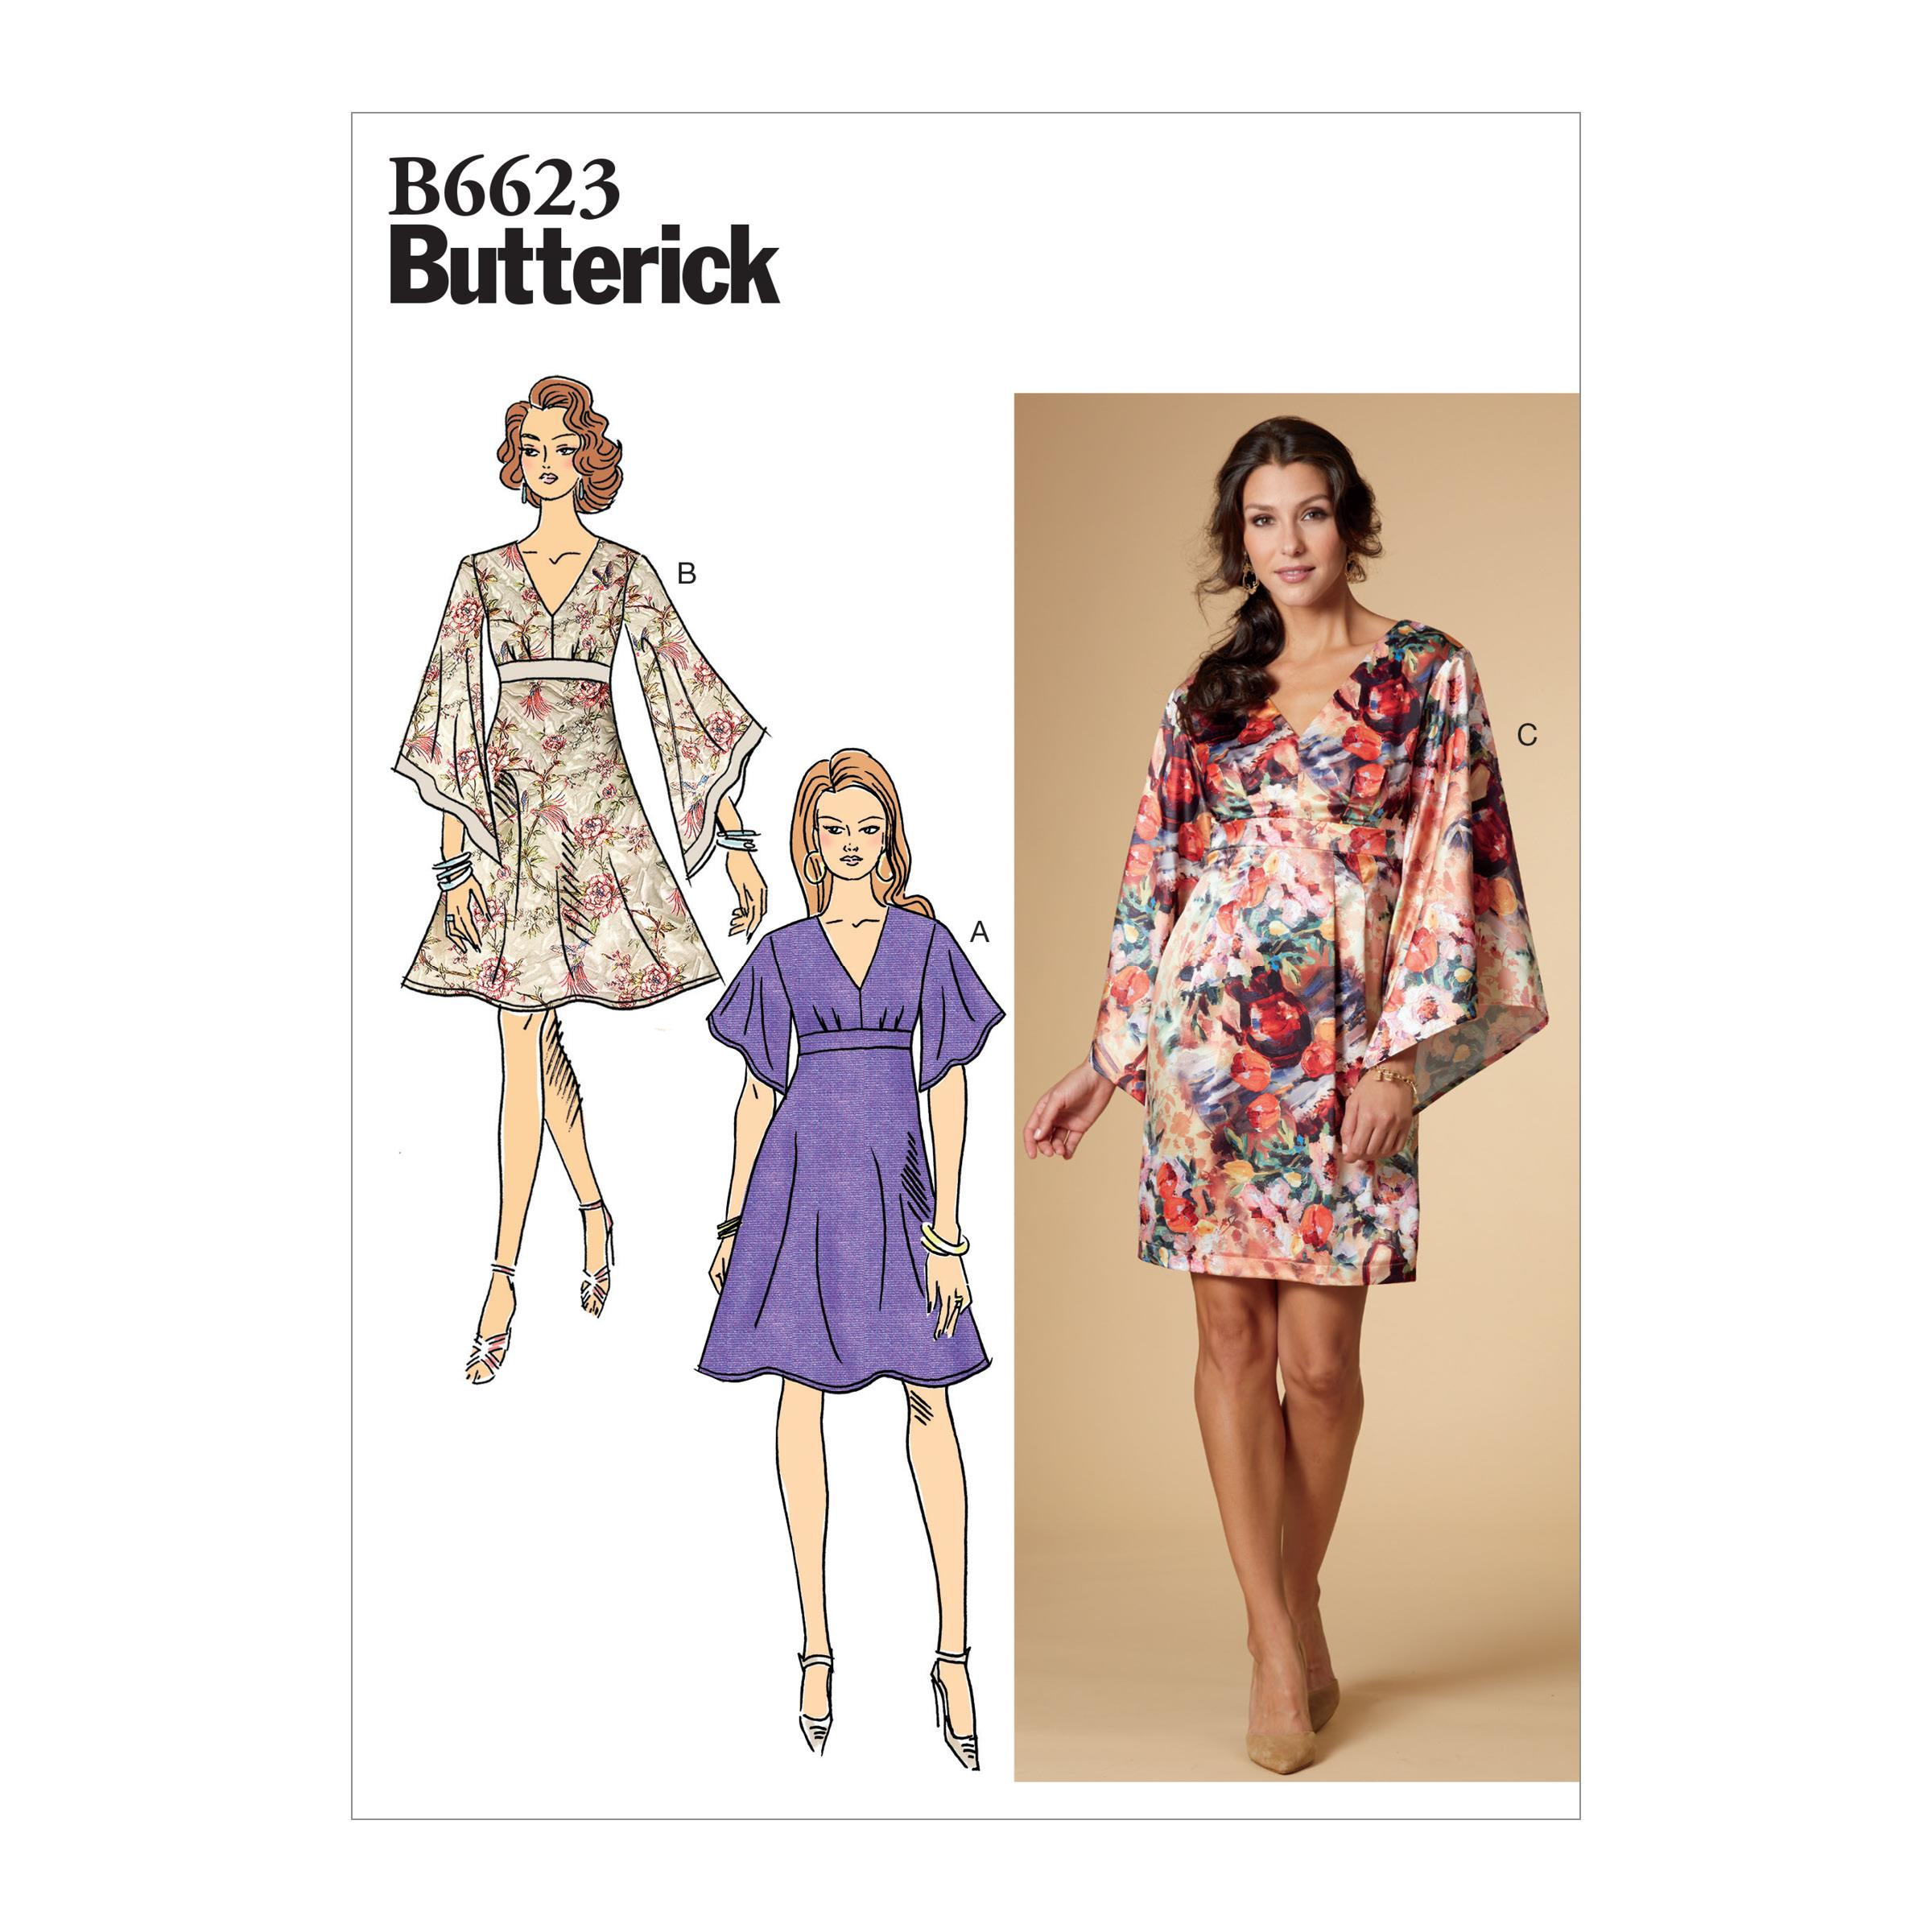 Butterick B6623 Misses' Dress